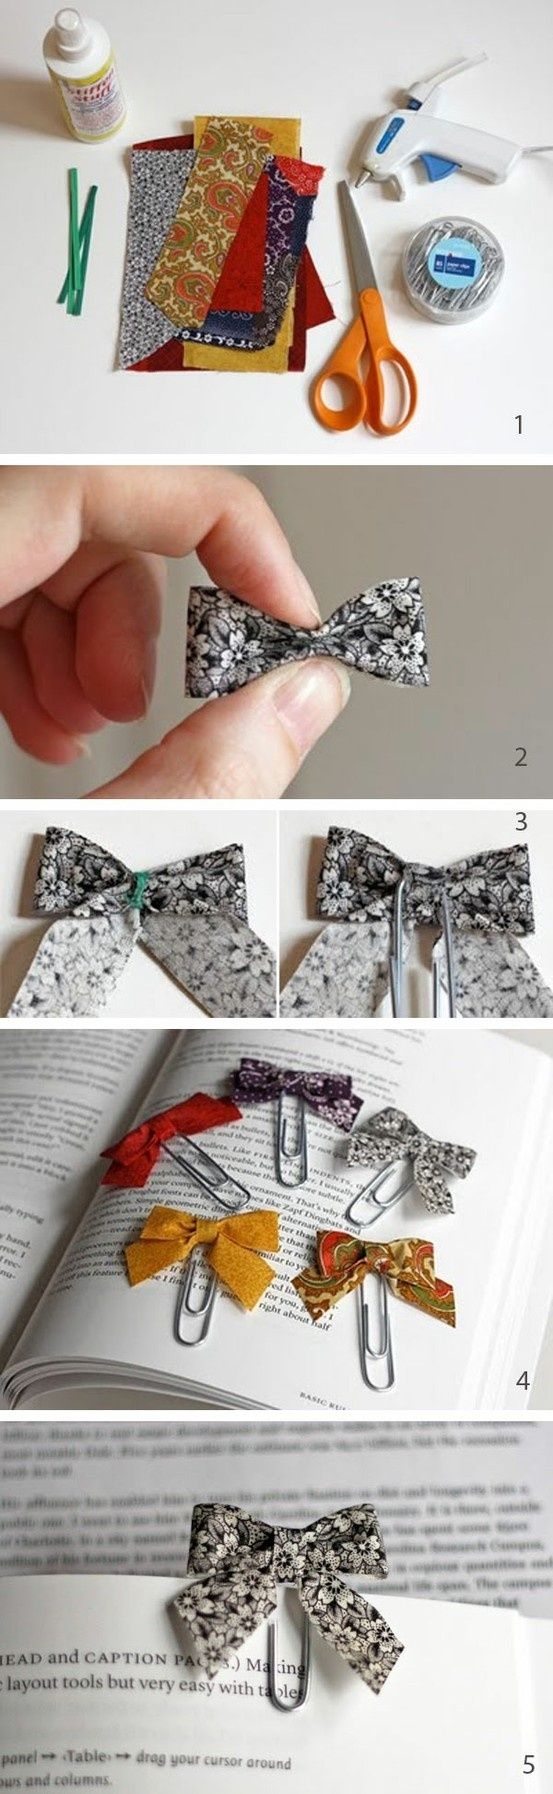 DIY Bow Bookmarks Pictures, Photos, and Images for Facebook, Tumblr, Pinterest, and Twitter